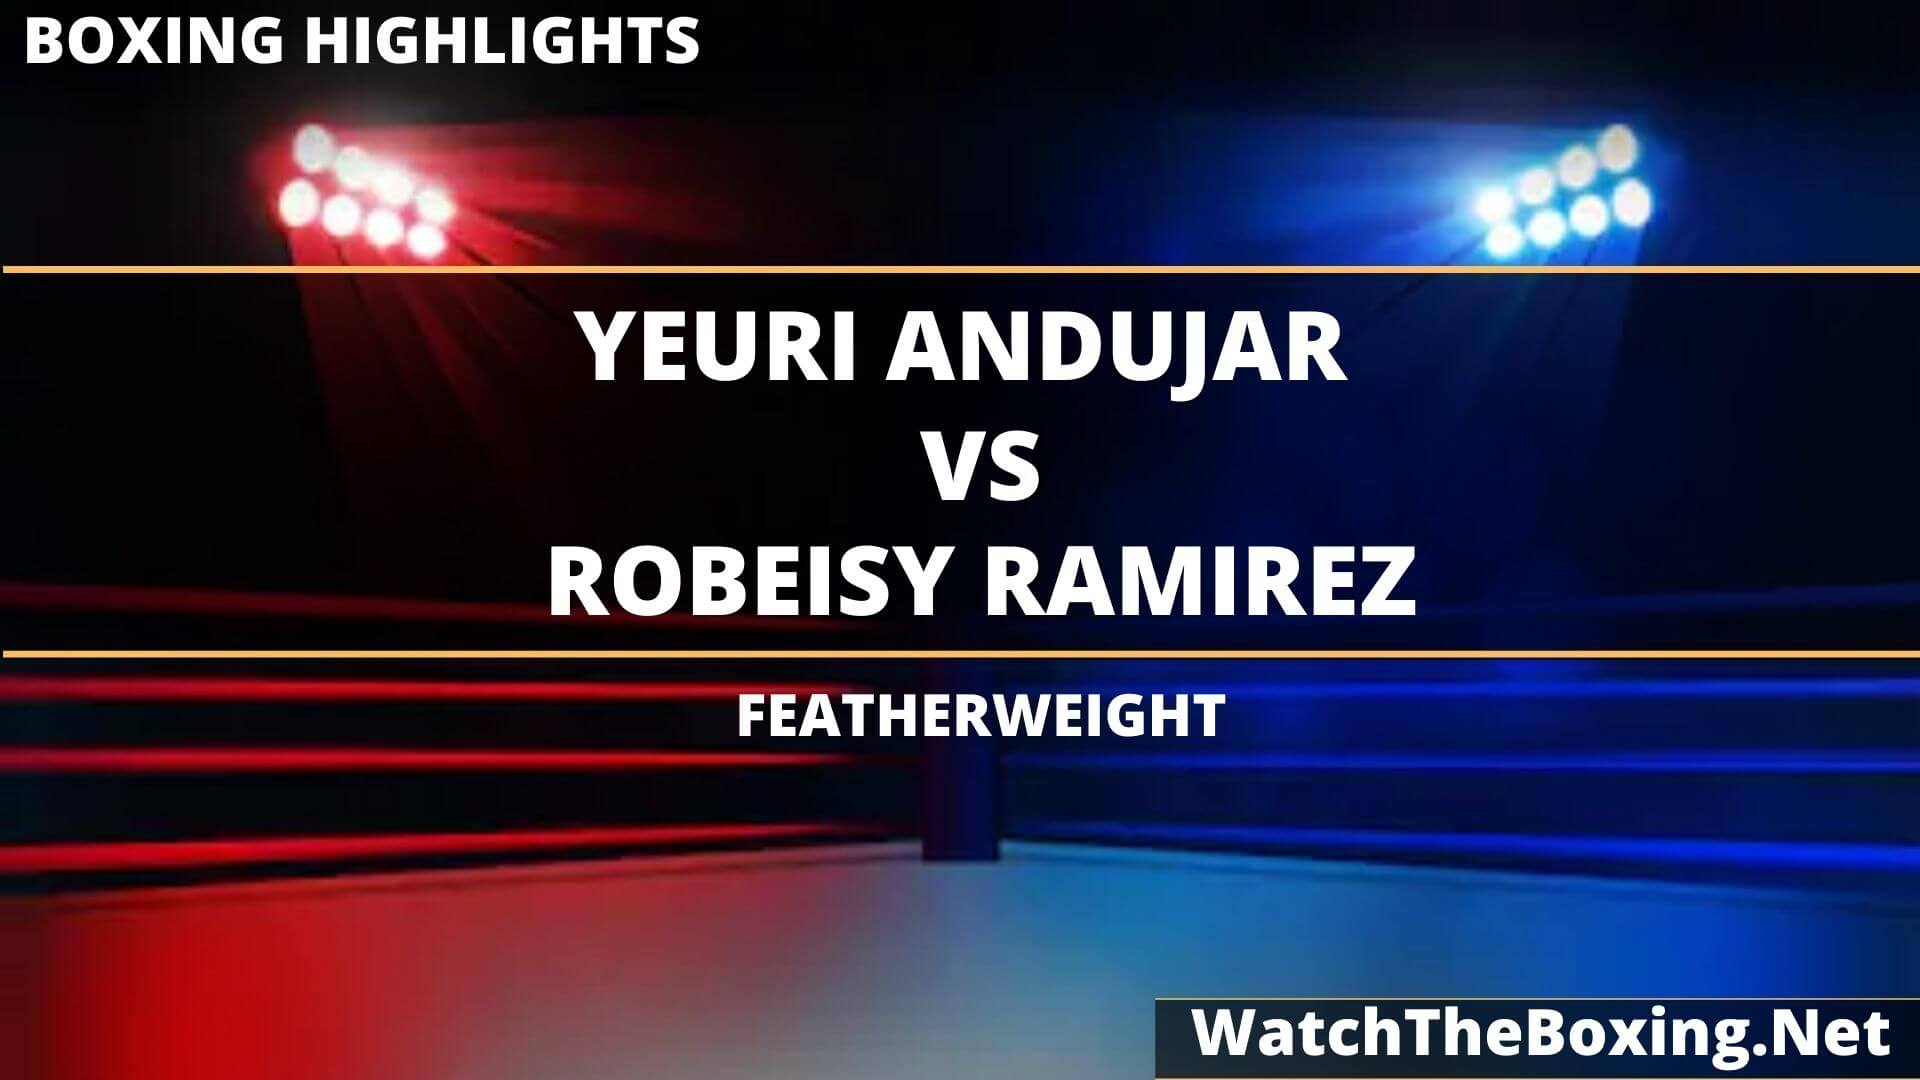 Yeuri Andujar Vs Robeisy Ramirez Highlights 2020 | Featherweight